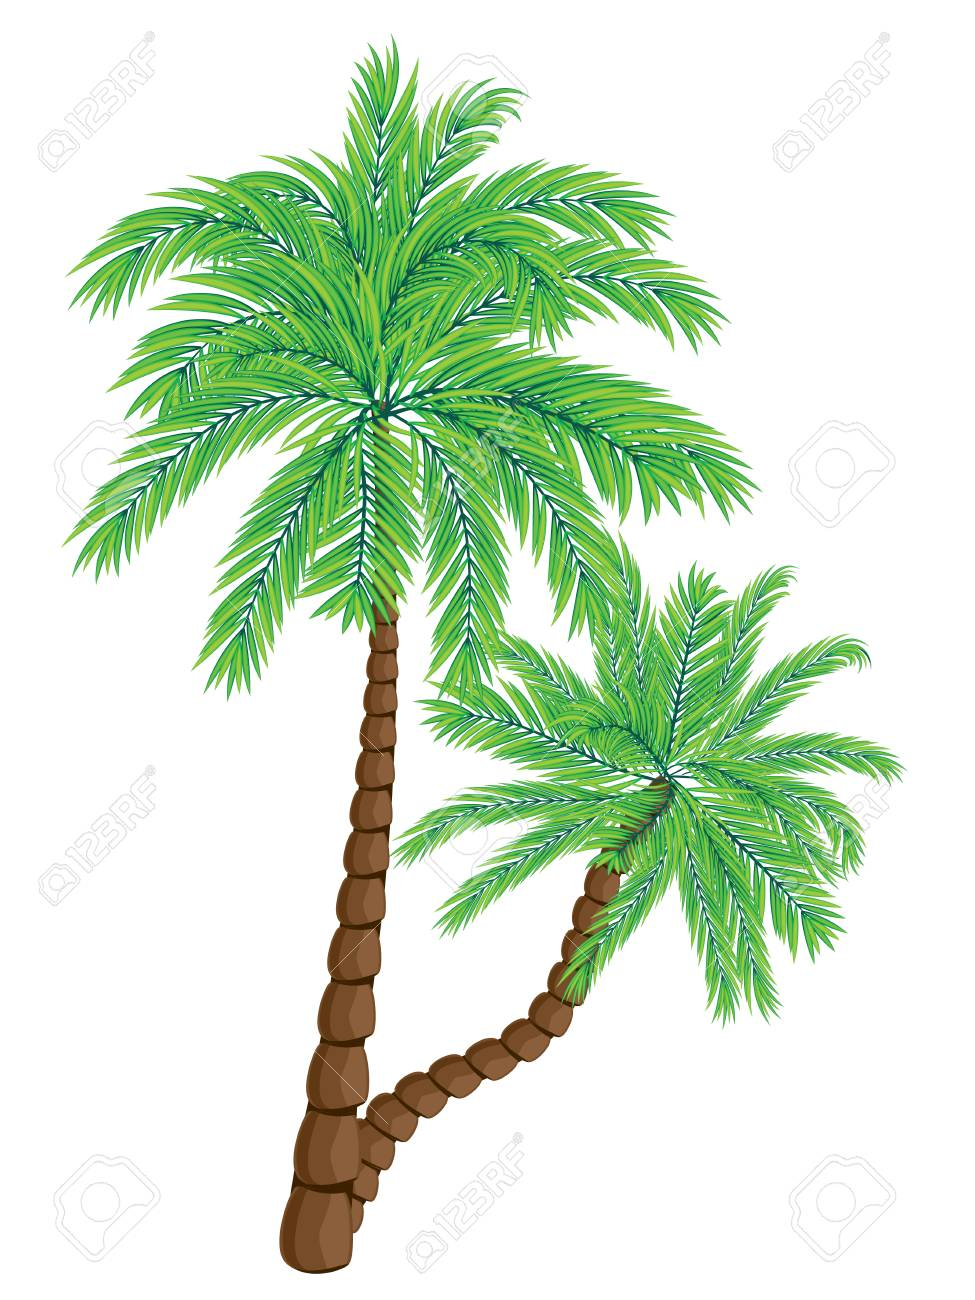 Two Colorful Palm Trees Illustration On White Background. Royalty ...